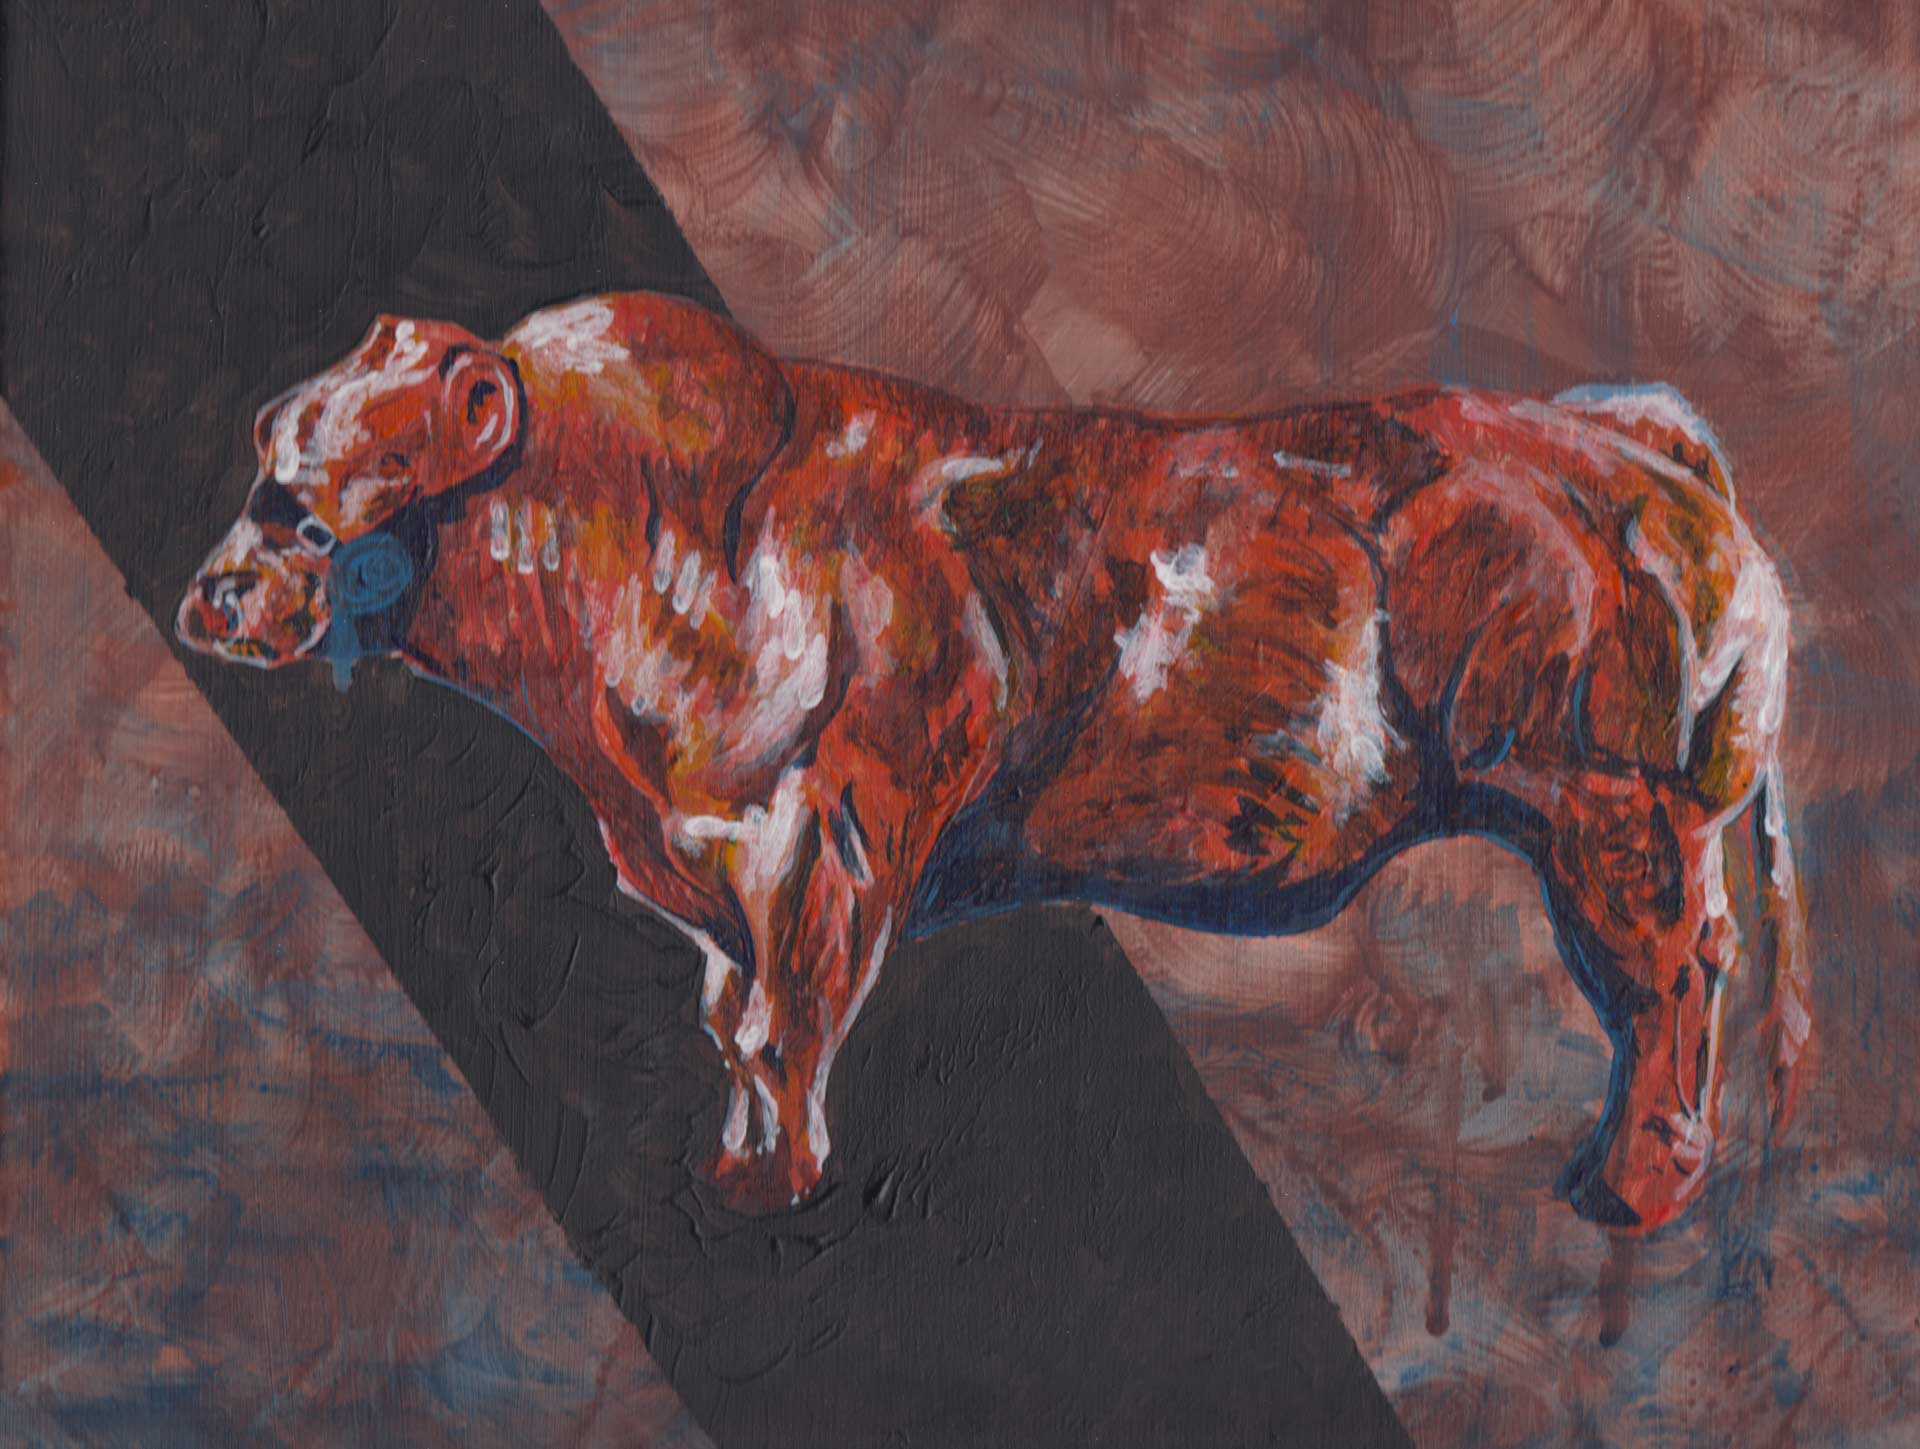 Belgian Blue, the muscular bull, painting by Alessandro Bruno.